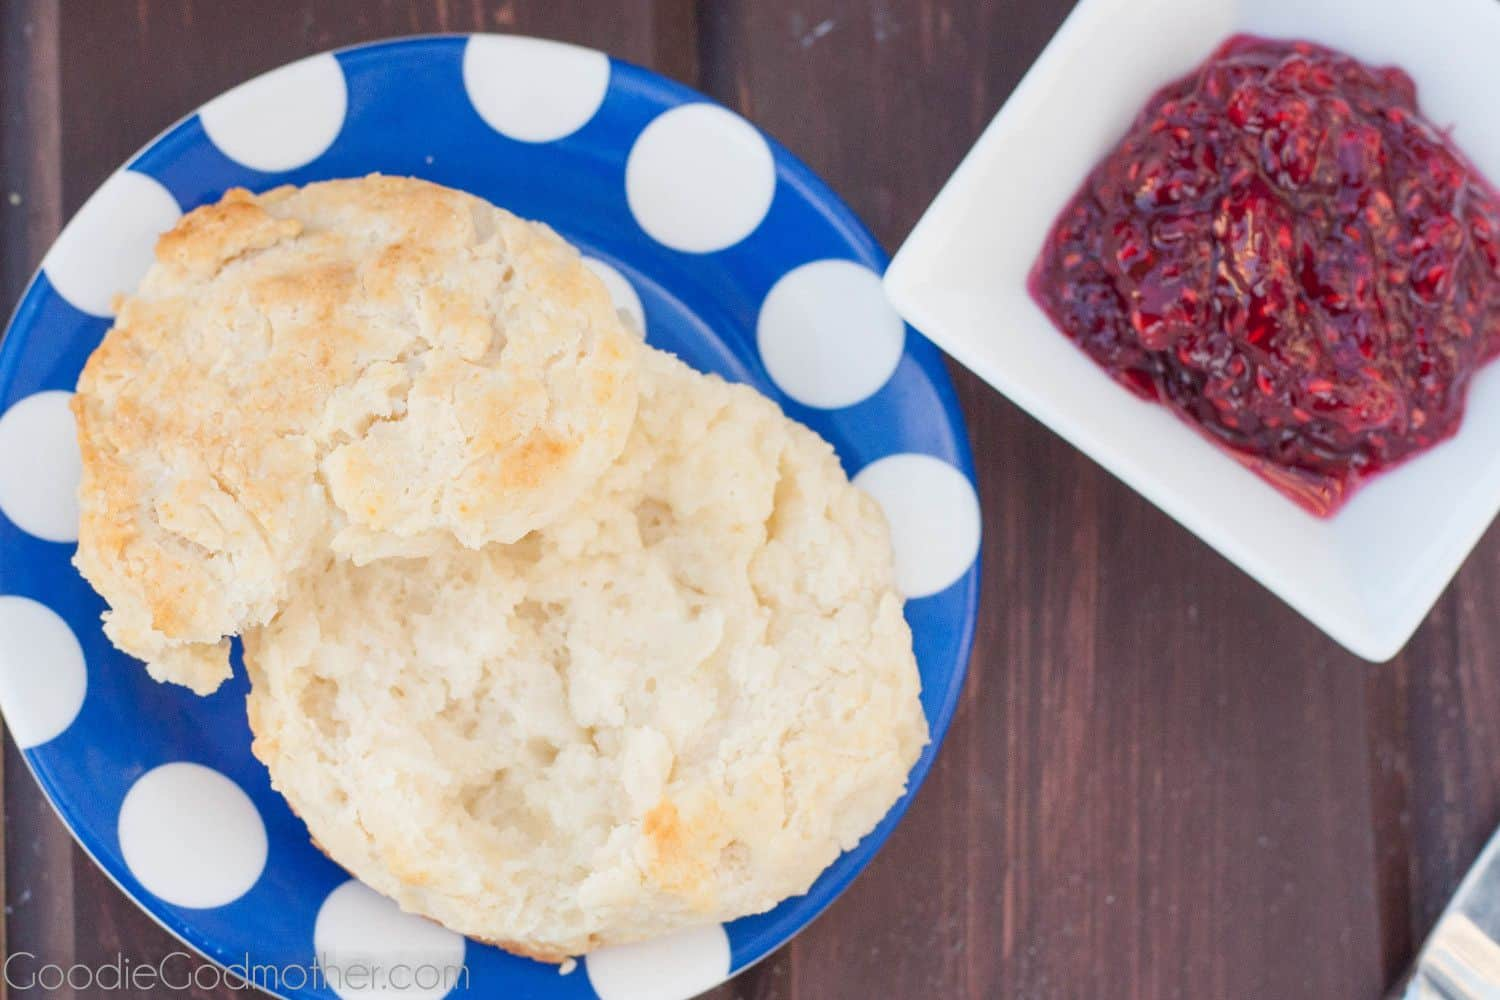 Flaky Southern Buttermilk Biscuits are easy to make at home in minutes. Get the recipe on GoodieGodmother.com